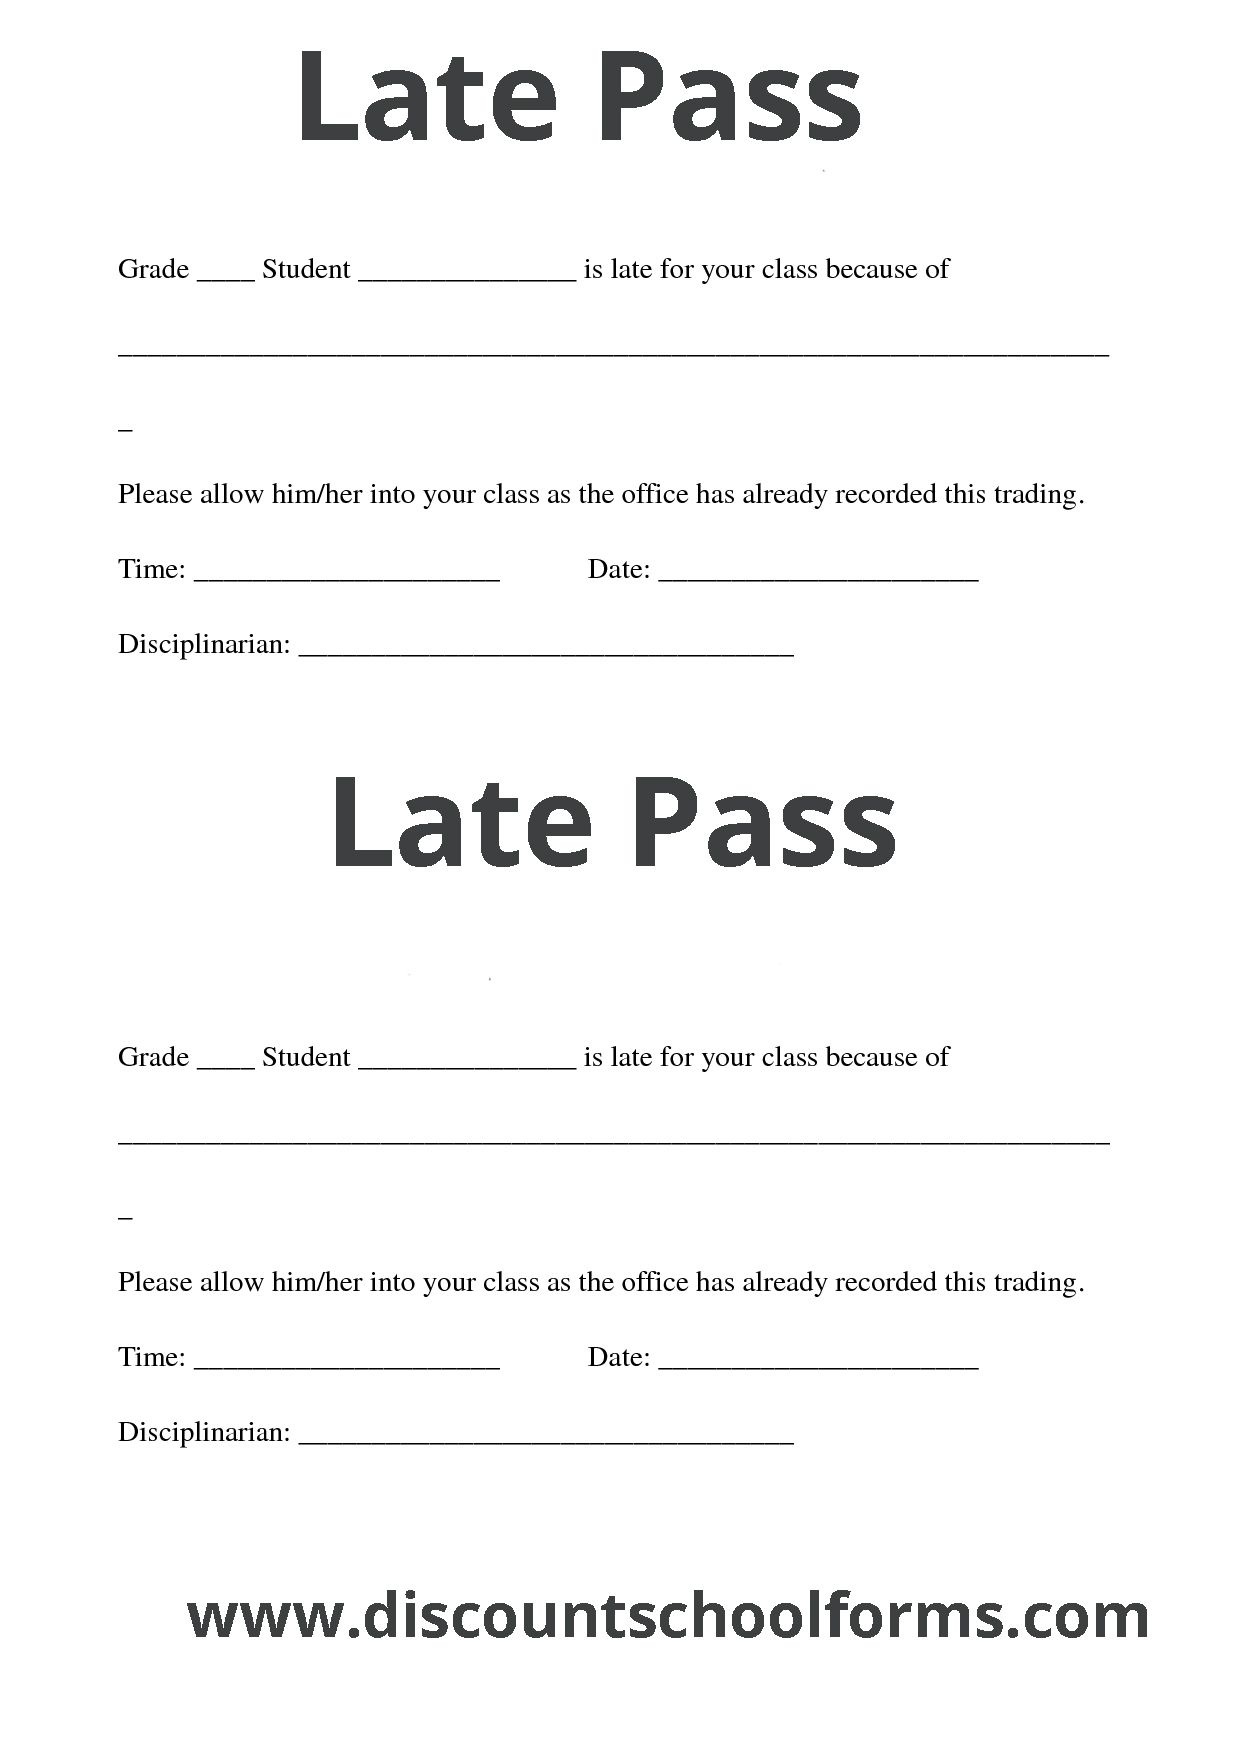 Discount School Forms Printing Services Like Late Pass Late Slips